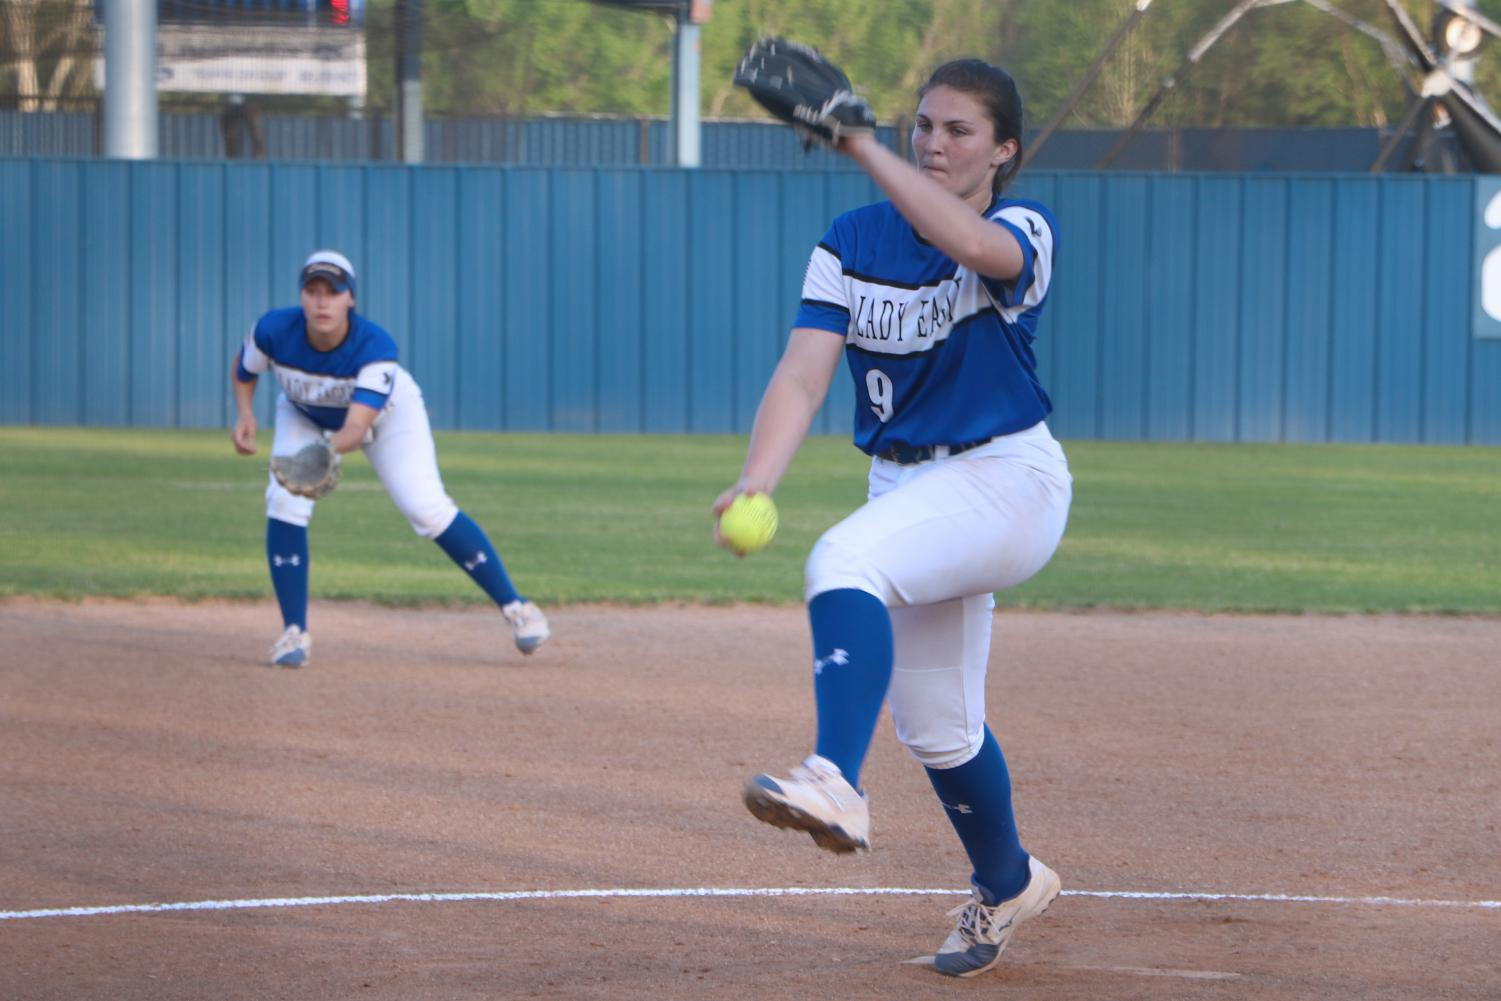 Senior Hannah Knox winds up to pitch the ball to an opposing player. The varsity softball team will play their bi-district game Thursday against Hallsville after clinching a spot Friday.